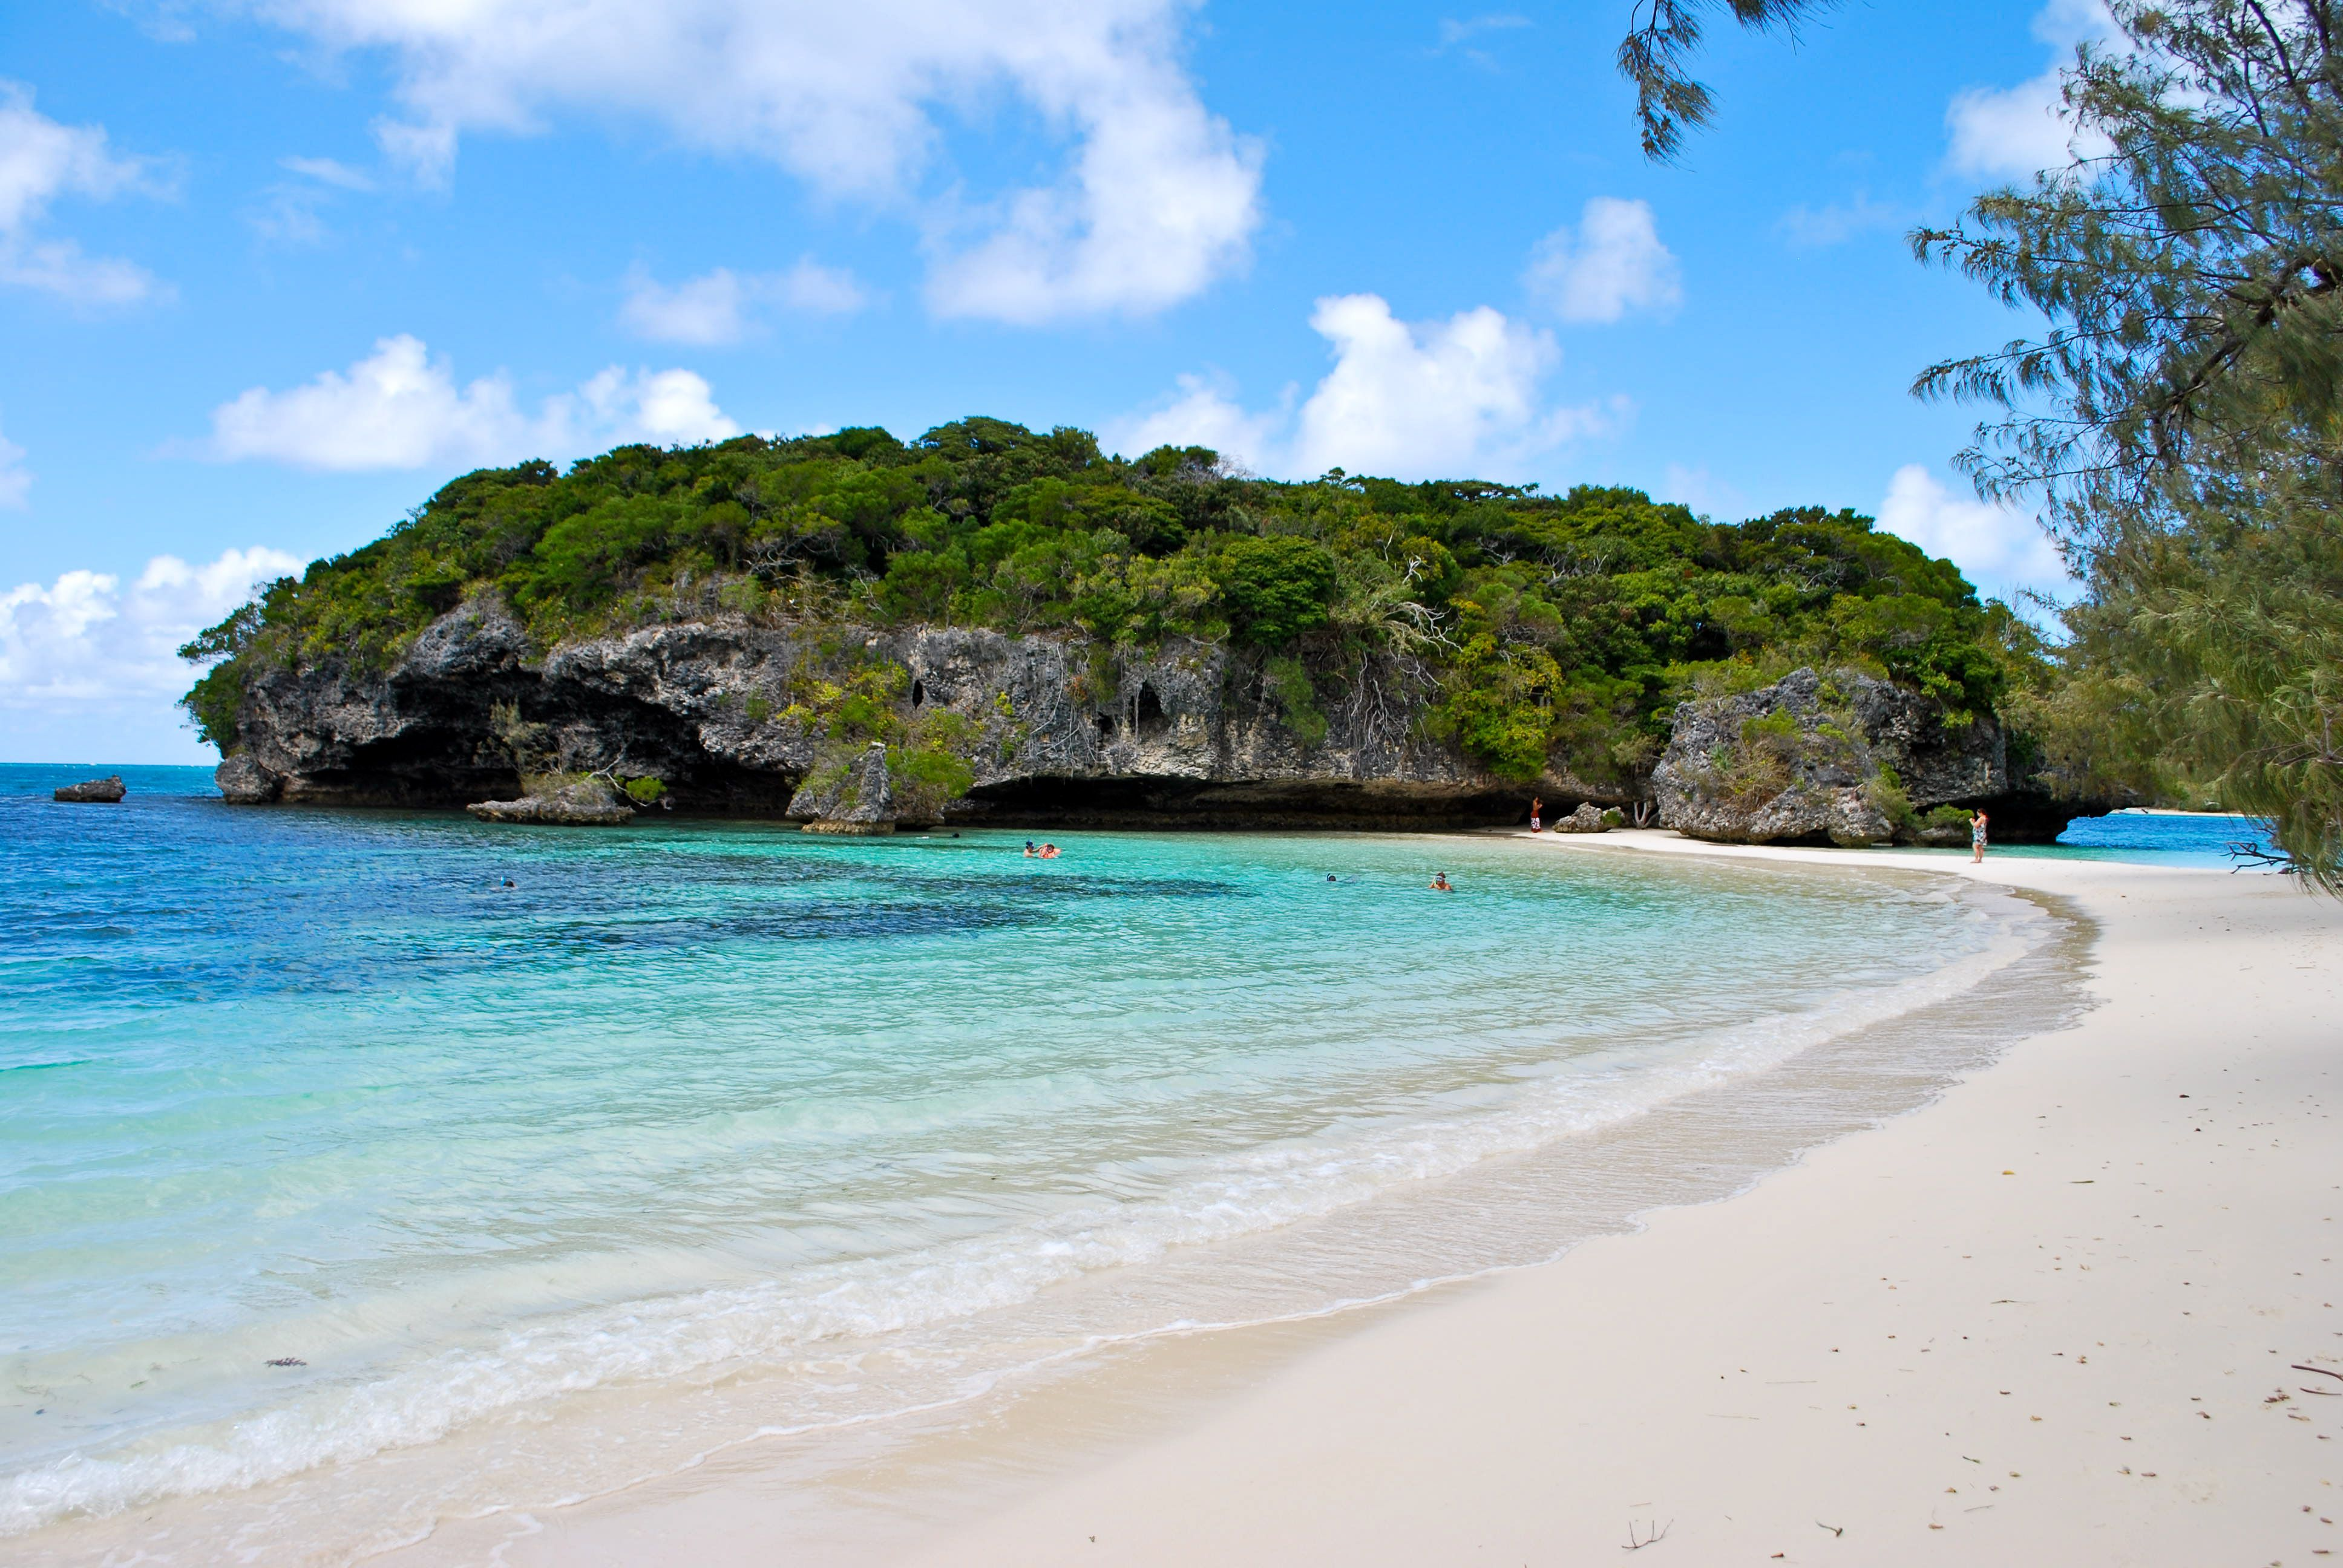 New Caledonia South Pacific Island wallpaper Gallery 3872x2592